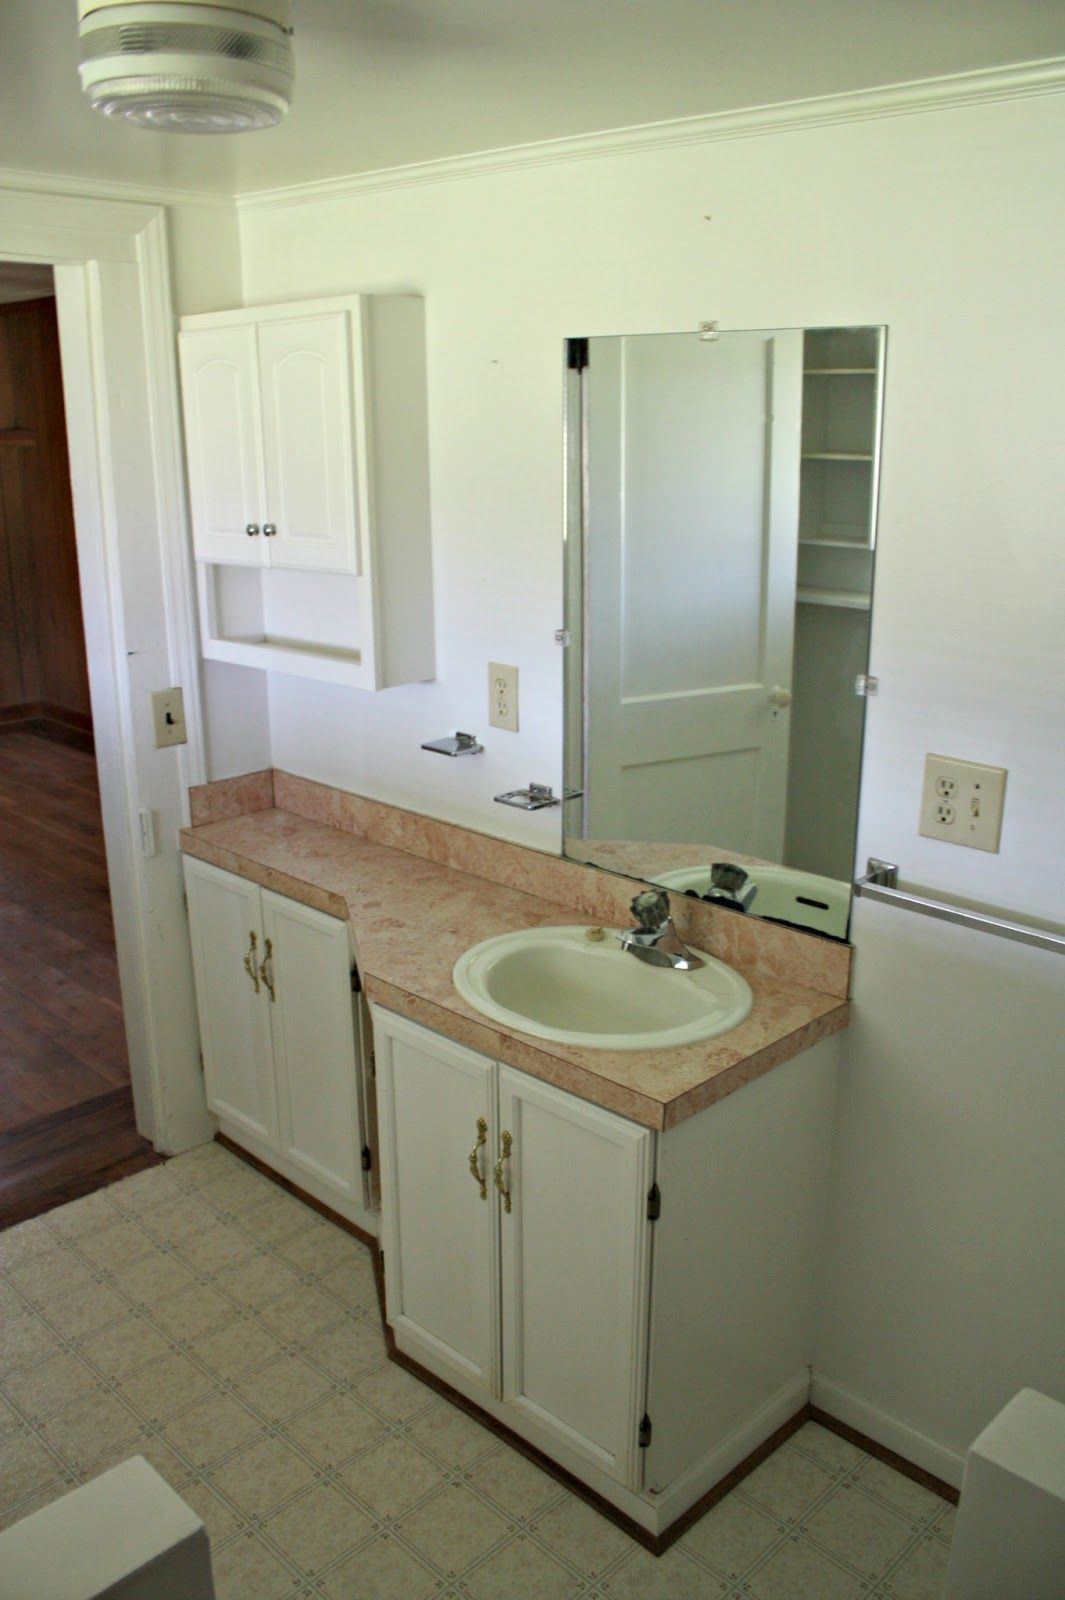 Narrow Bathroom Vanities Color Best Narrow Bathroom Vanities Best Bathroom Designs Narrow Bathroom Vanities Narrow Bathroom Designs Narrow Bathroom